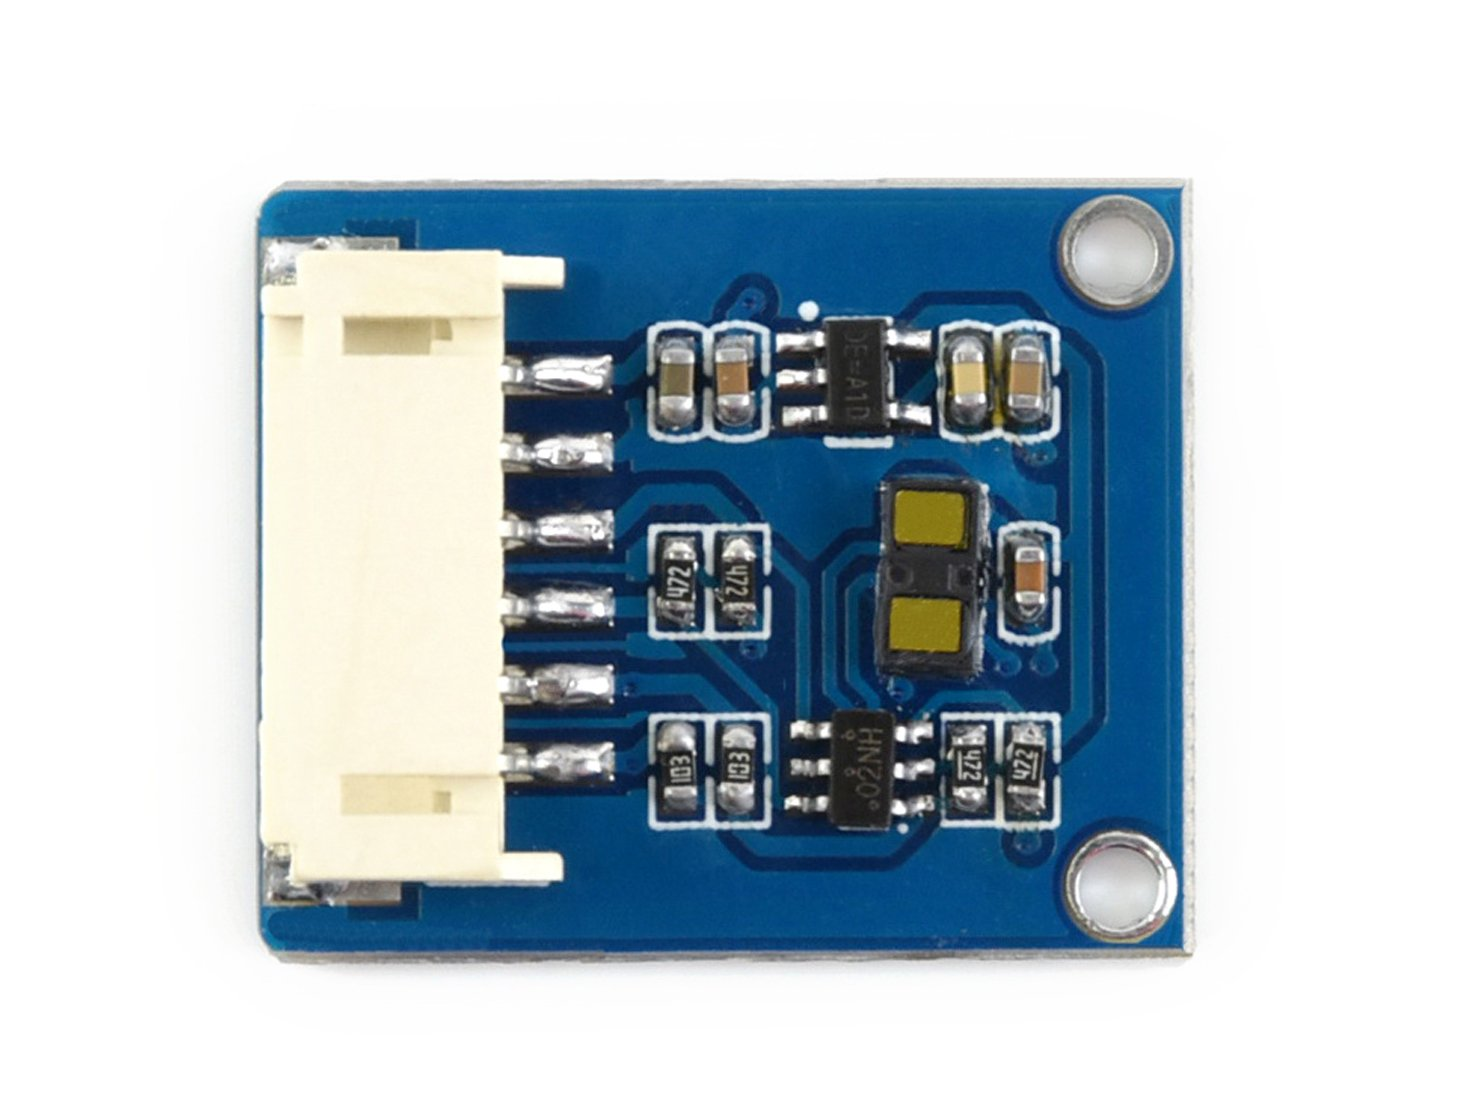 Waveshare VL53L1X Time-of-Flight Long Distance Ranging Sensor Accurate Ranging up to 4m Distance Measurement I2C Interface